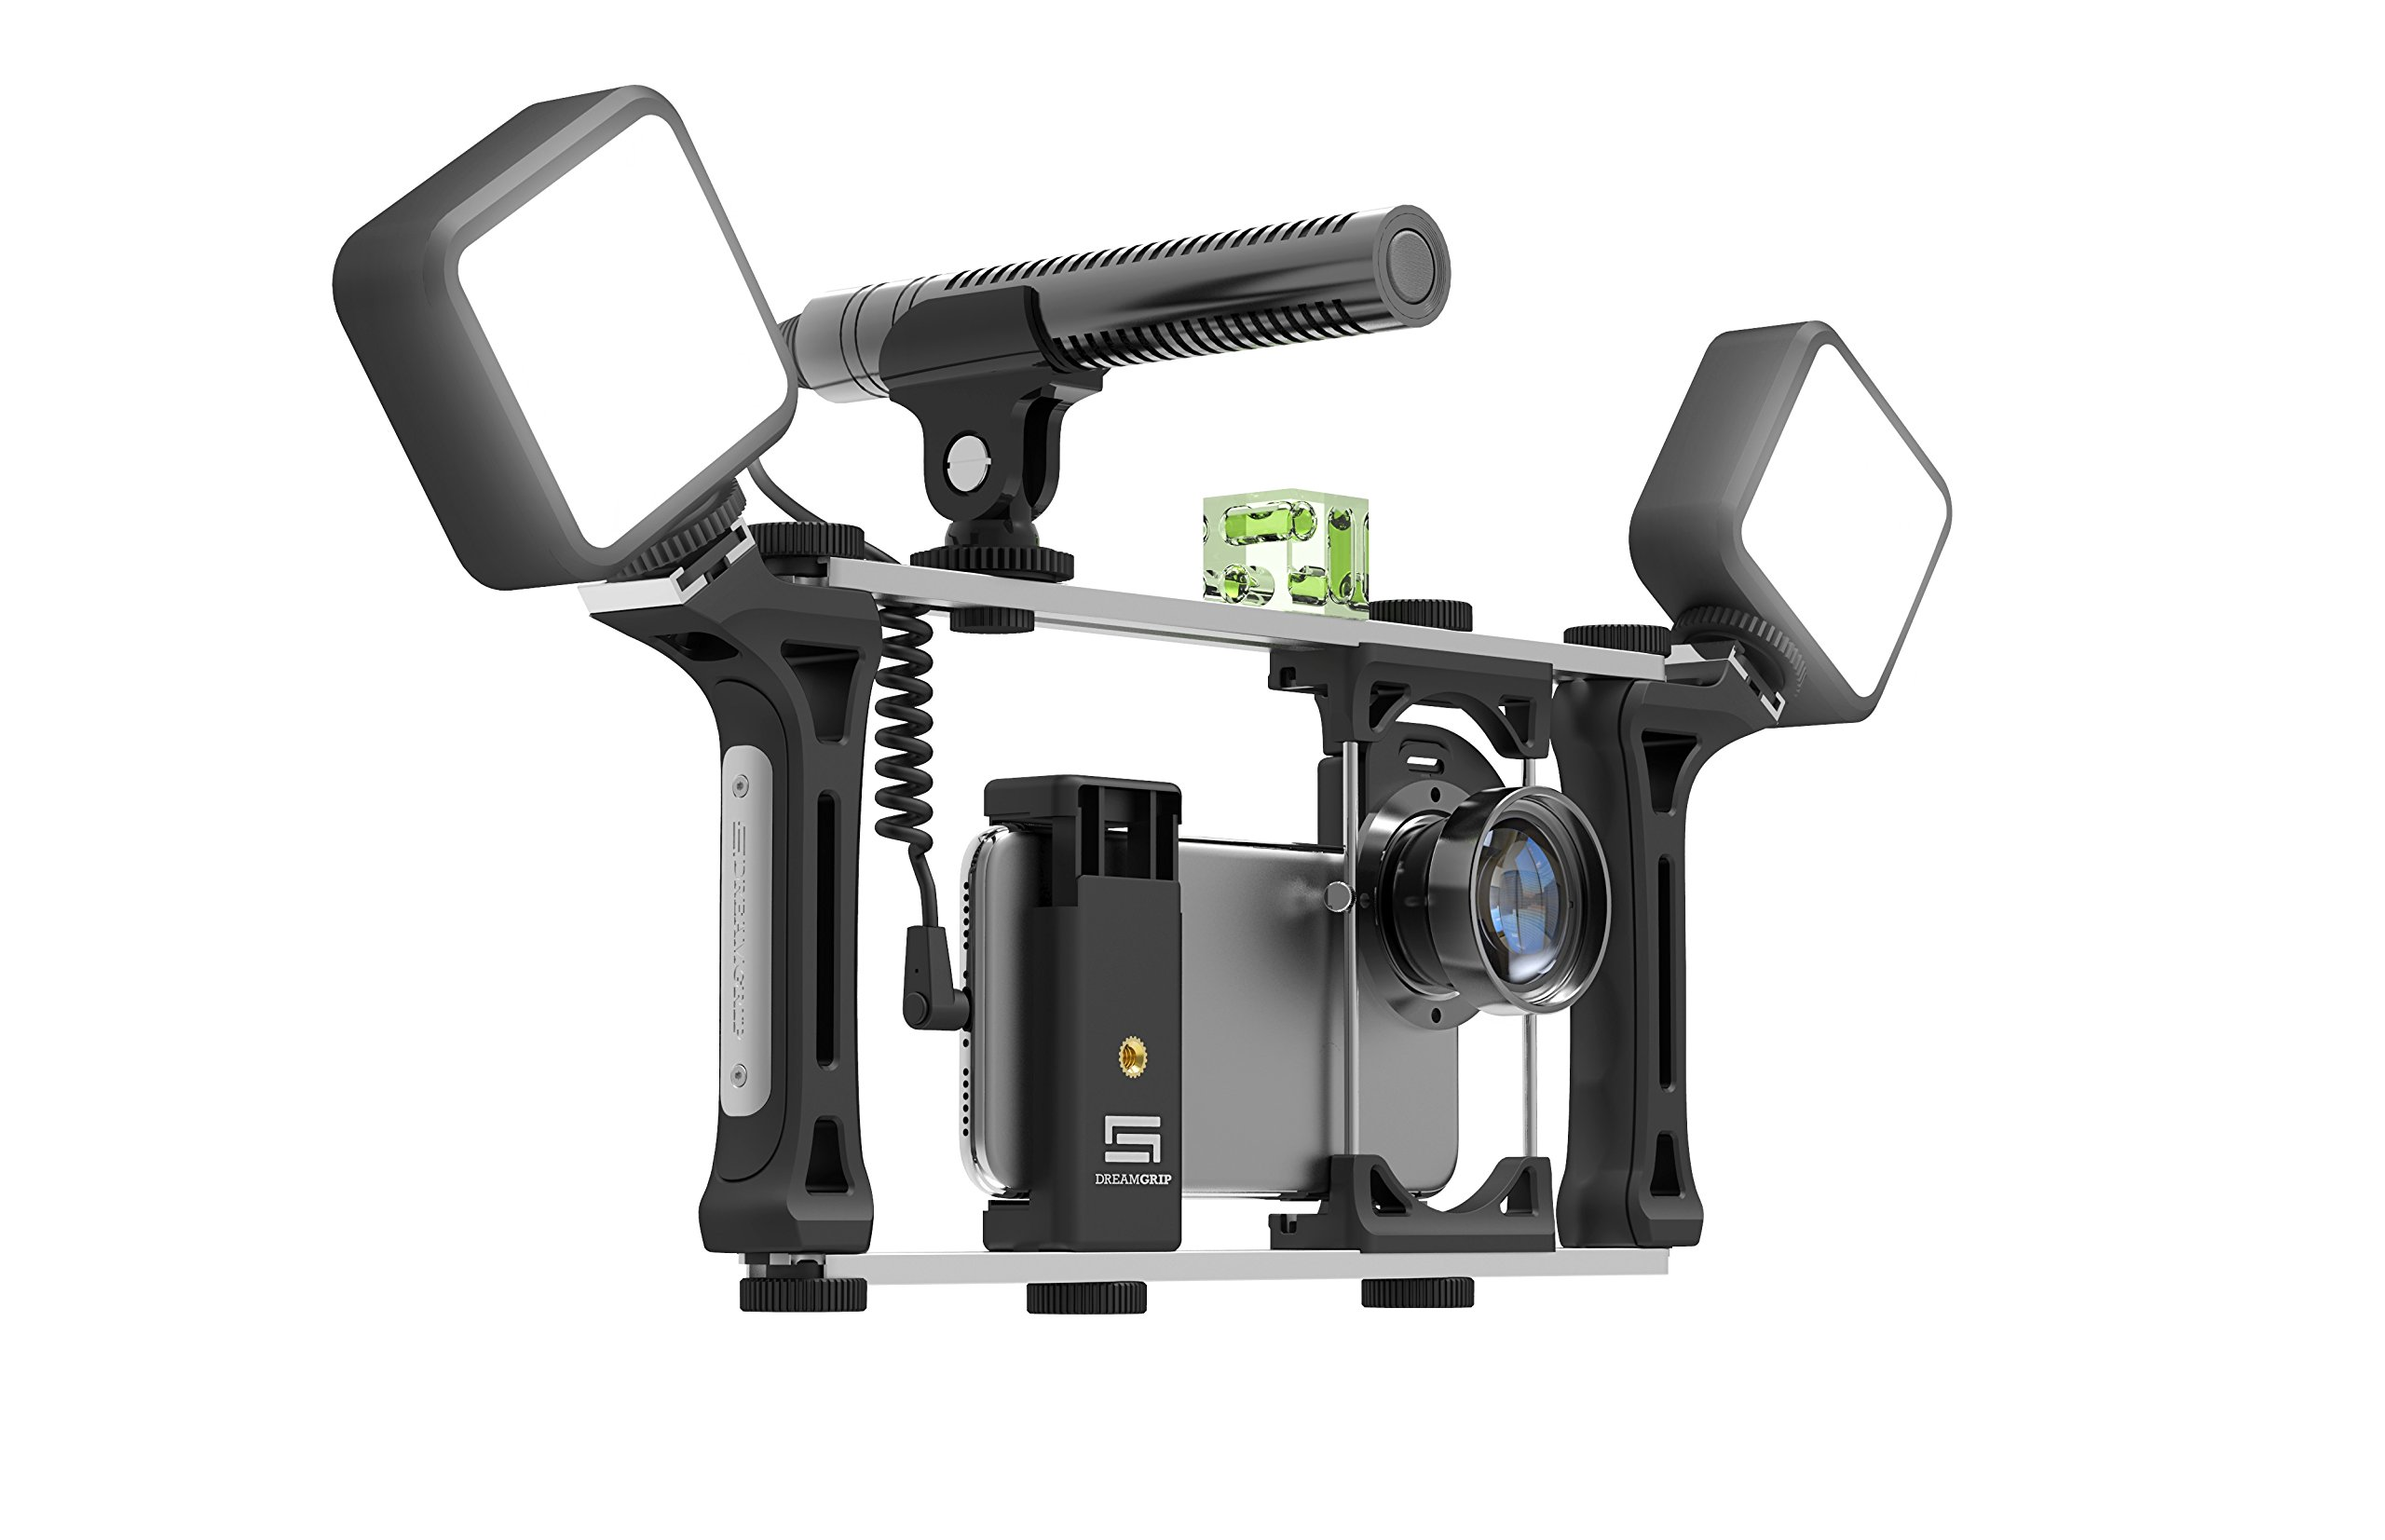 DREAMGRIP Evolution MOJO Universal Transformer Rig for Smartphones, Action Cameras, DSLR Cameras. The Set for Journalists with Wired Gun Microphone and LED Lights. Smart Filming System by DREAMGRIP